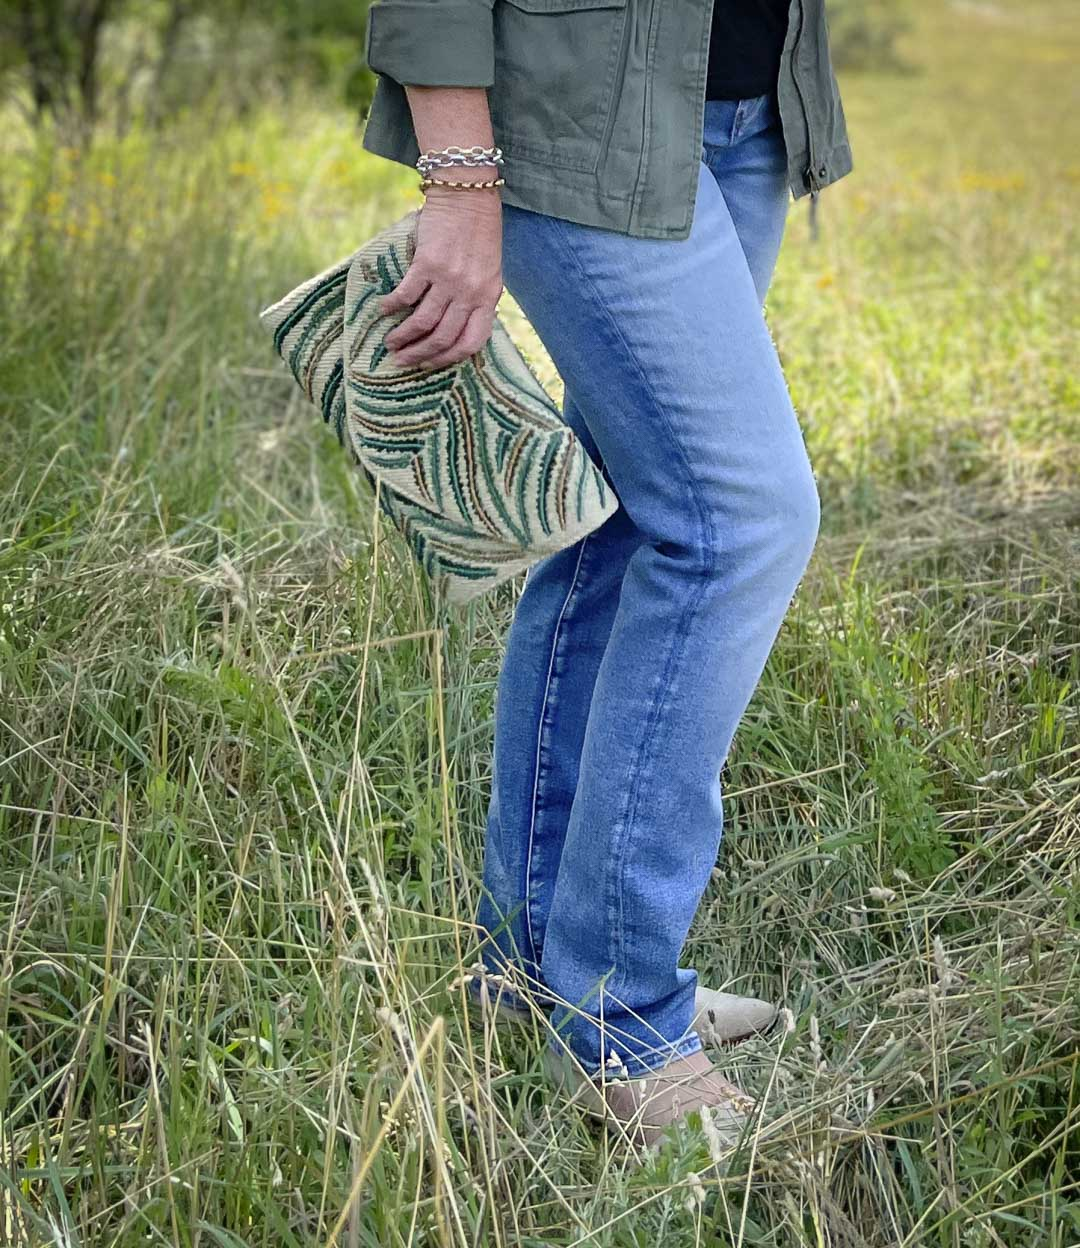 Fashion Blogger 50 Is Not Old is wearing jeans and an embroidered clutch